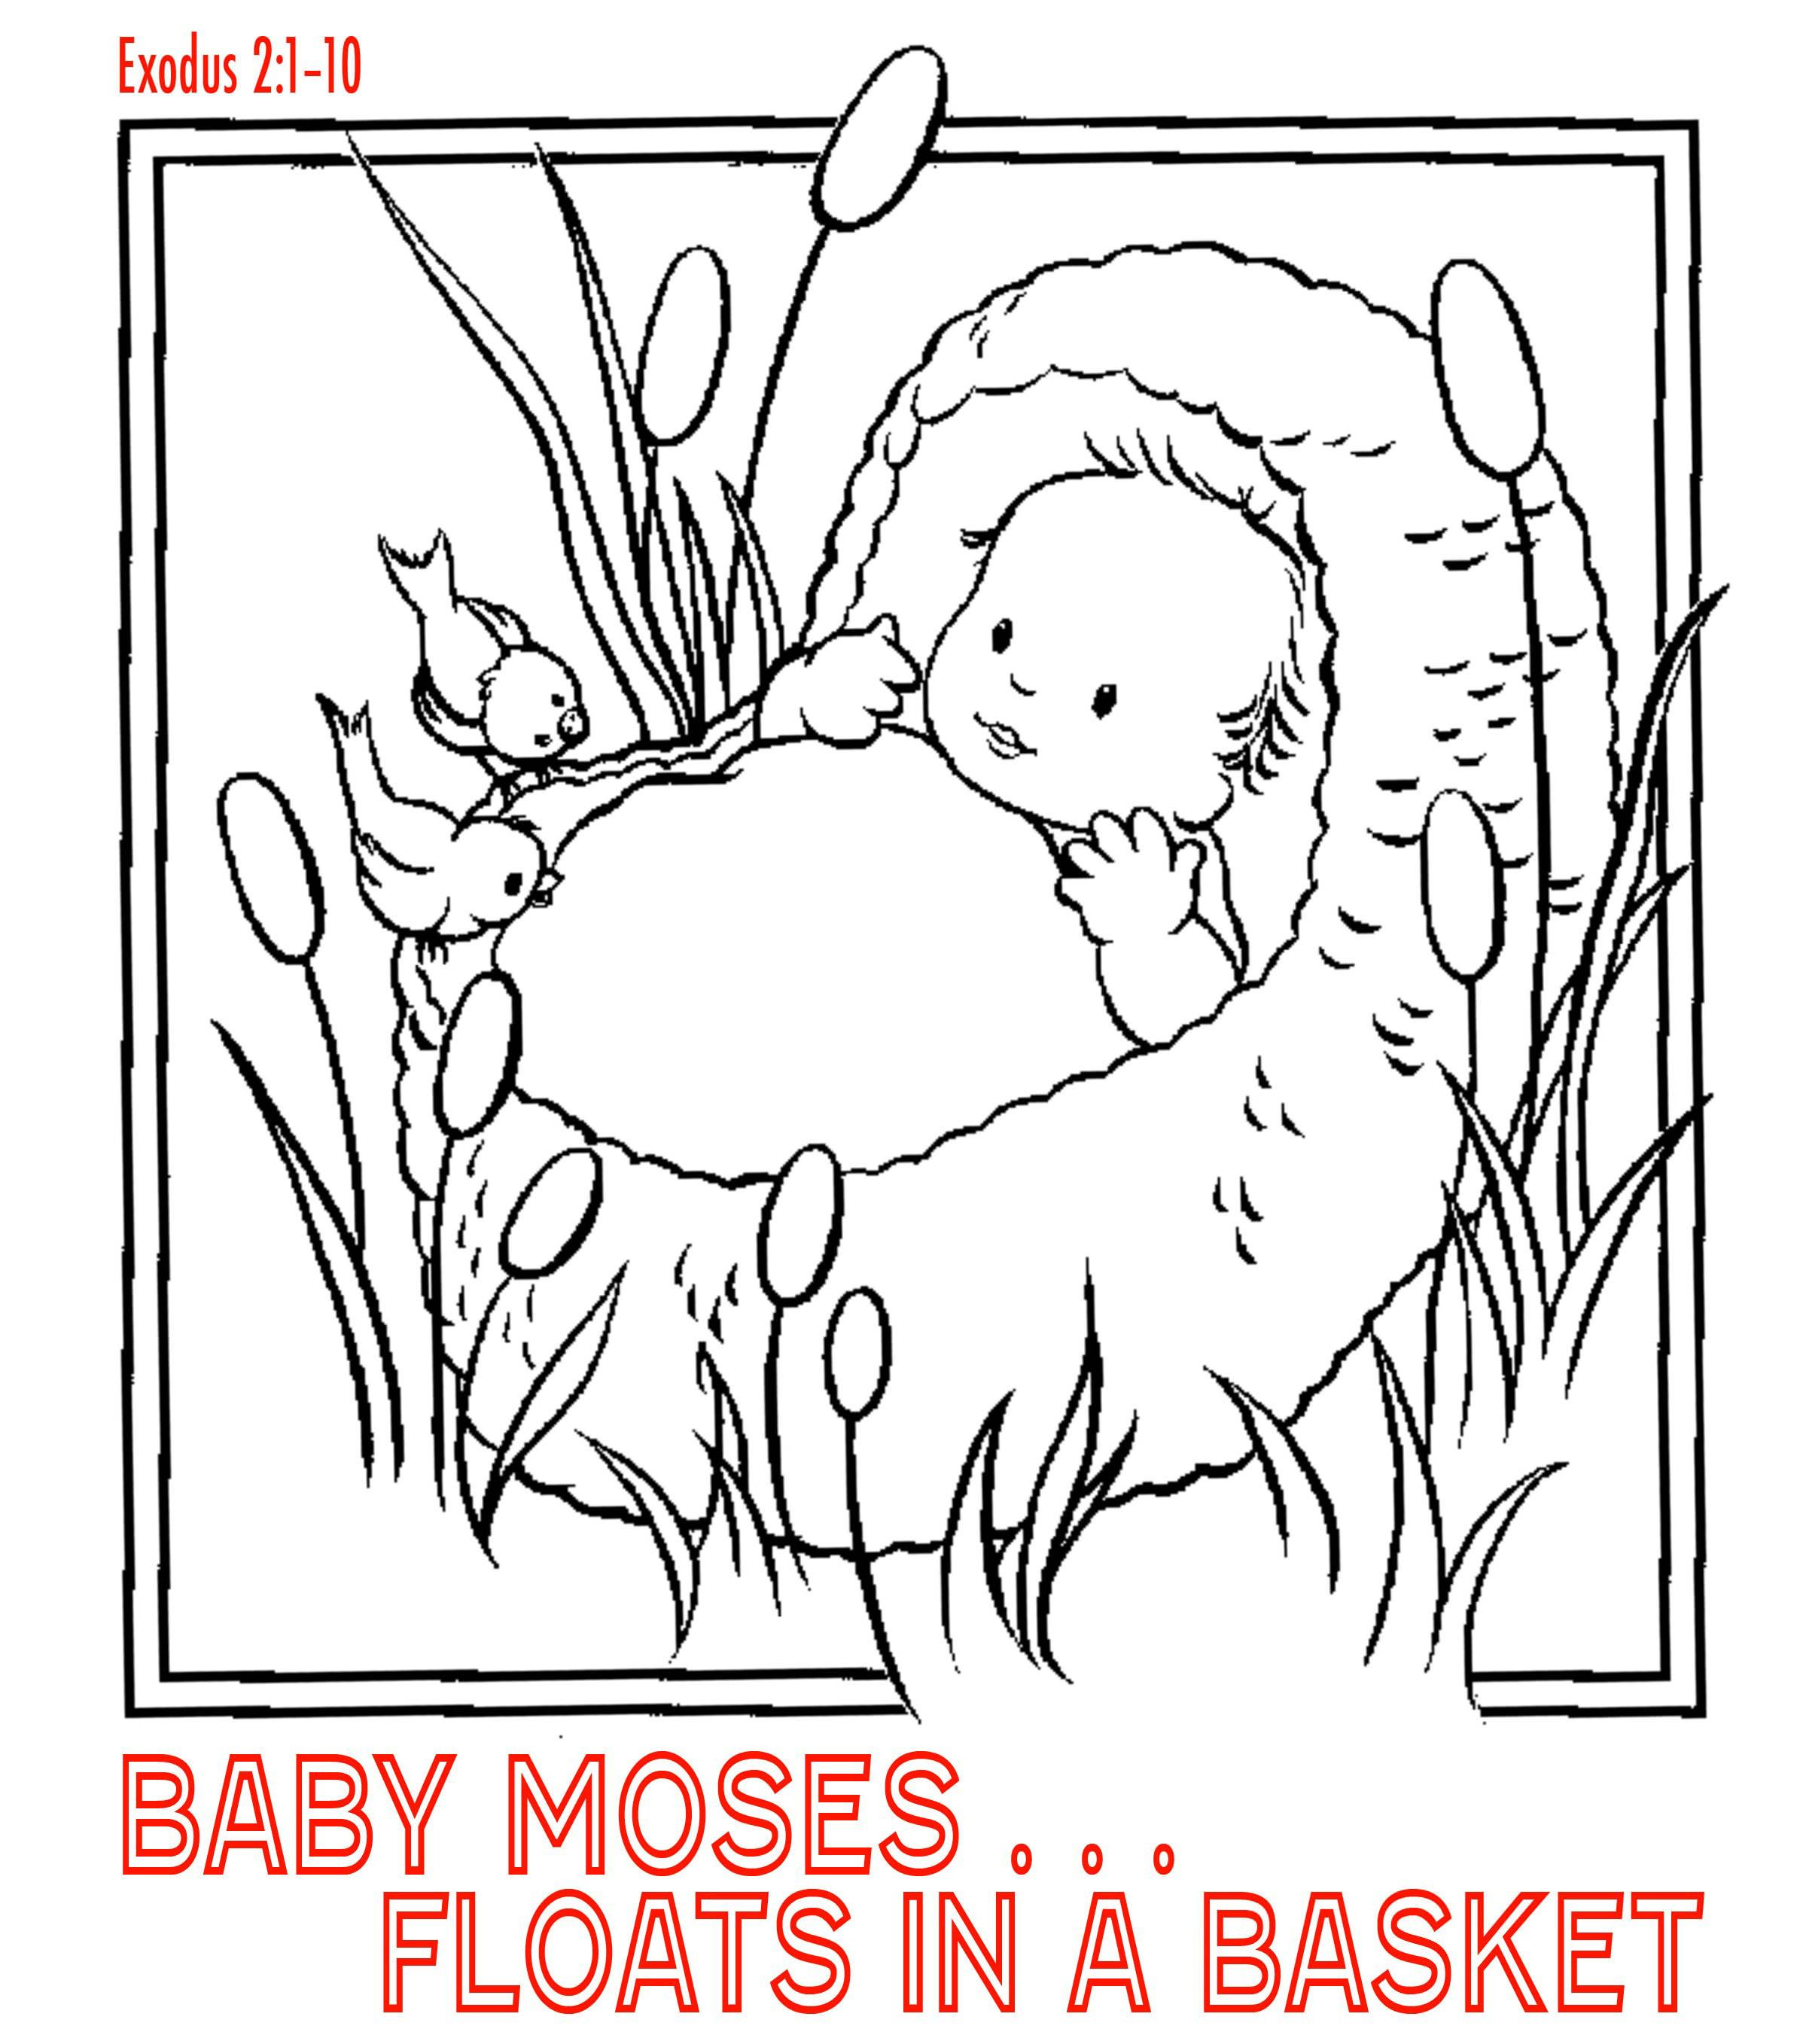 coloring page of baby Moses afloat in a basket princess found him ...